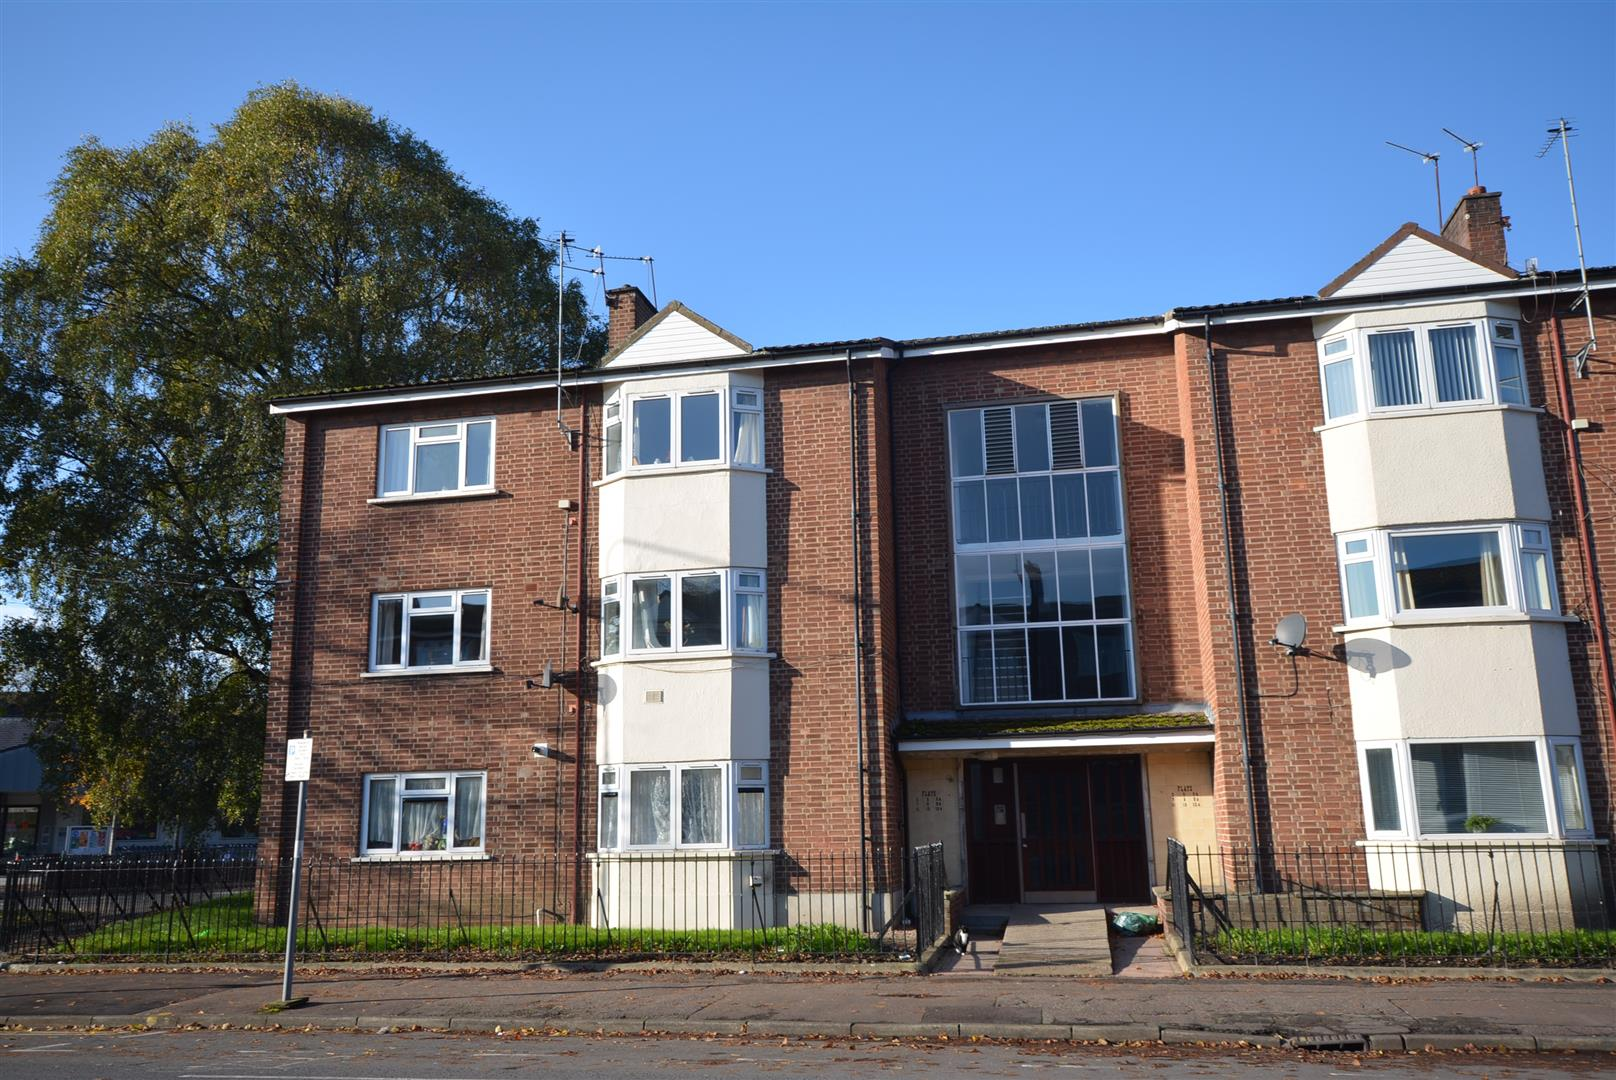 2 bed private halls to rent in Cathays Terrace, Cardiff, CF24